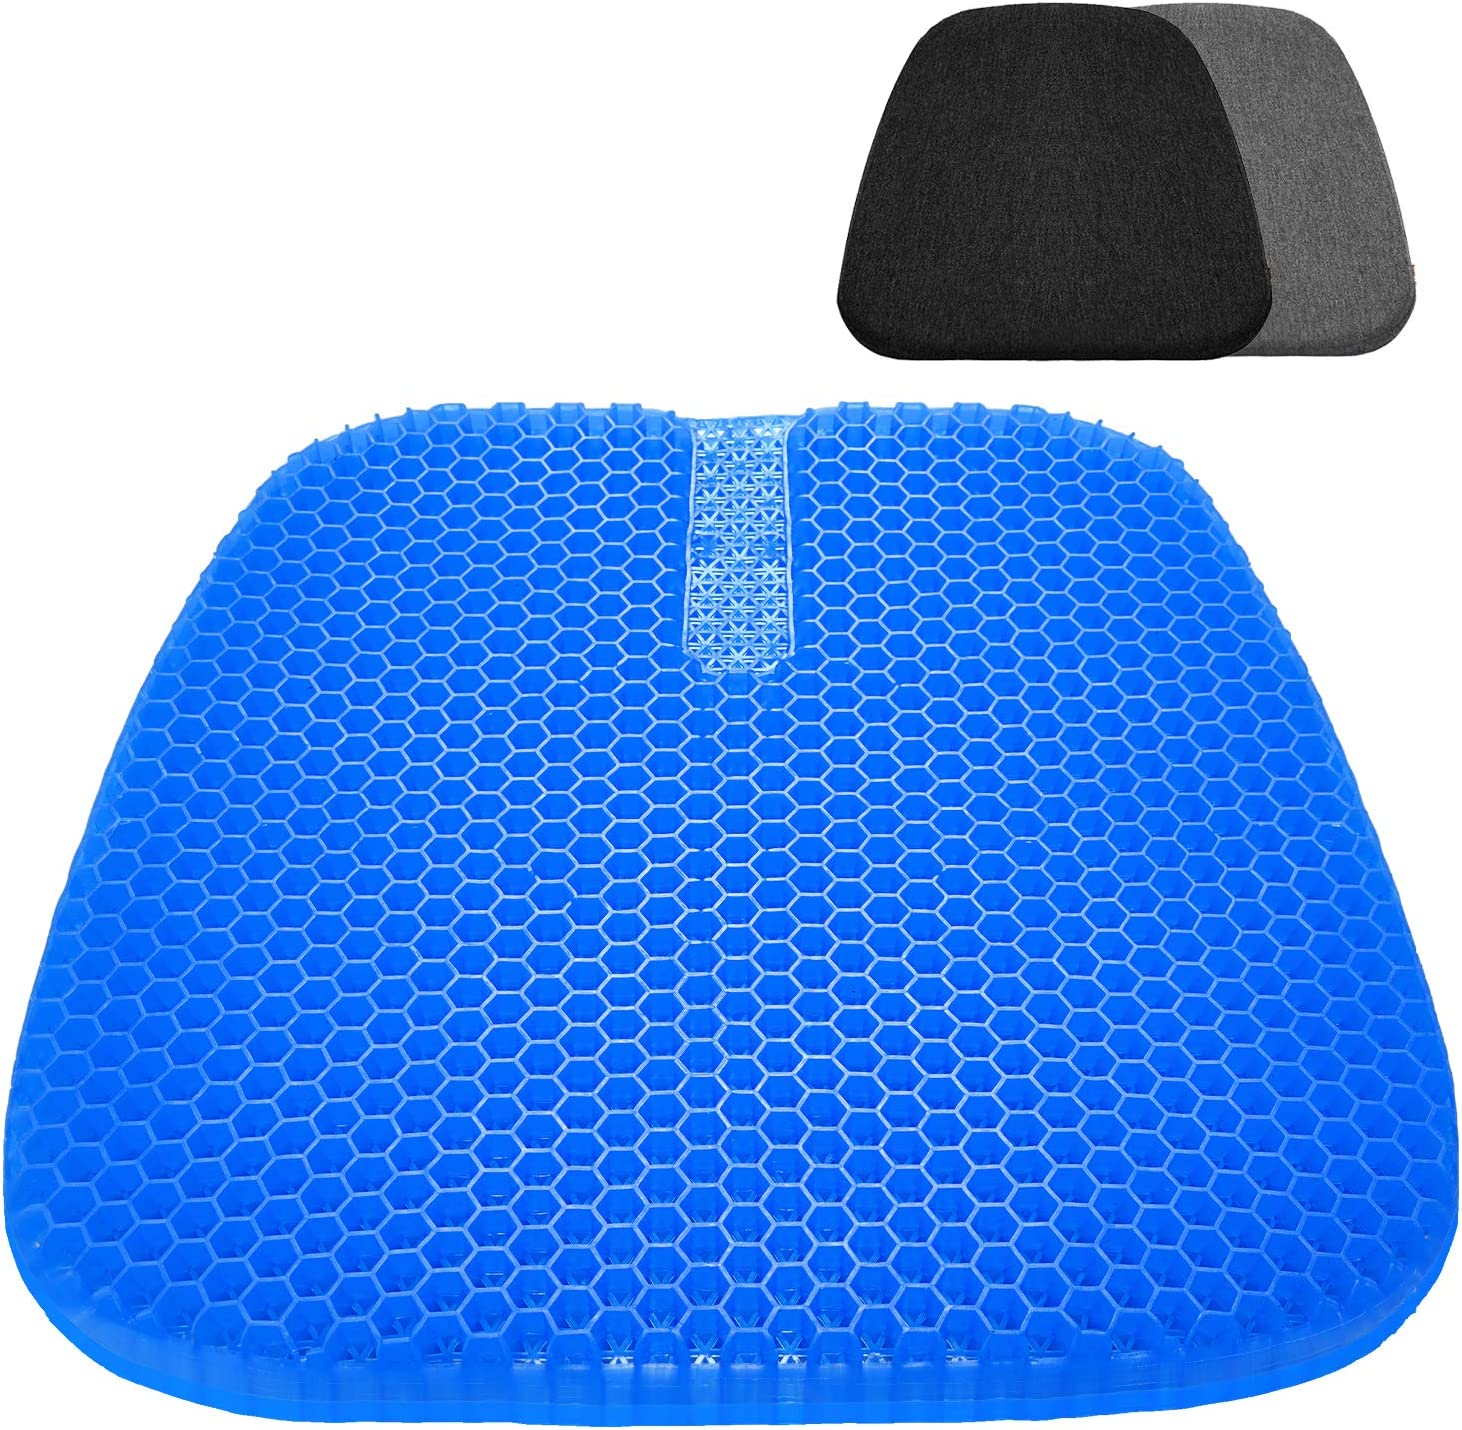 Large Gel Seat Cushion, Upgraded Seat Cushion with 2 Pack Non-Slip Cover, Multi-Use Seat Cushion Super Breathable Honeycomb Design Relief Back Pain Gel Cushion for Office Chair,Car, Wheelchair, Home